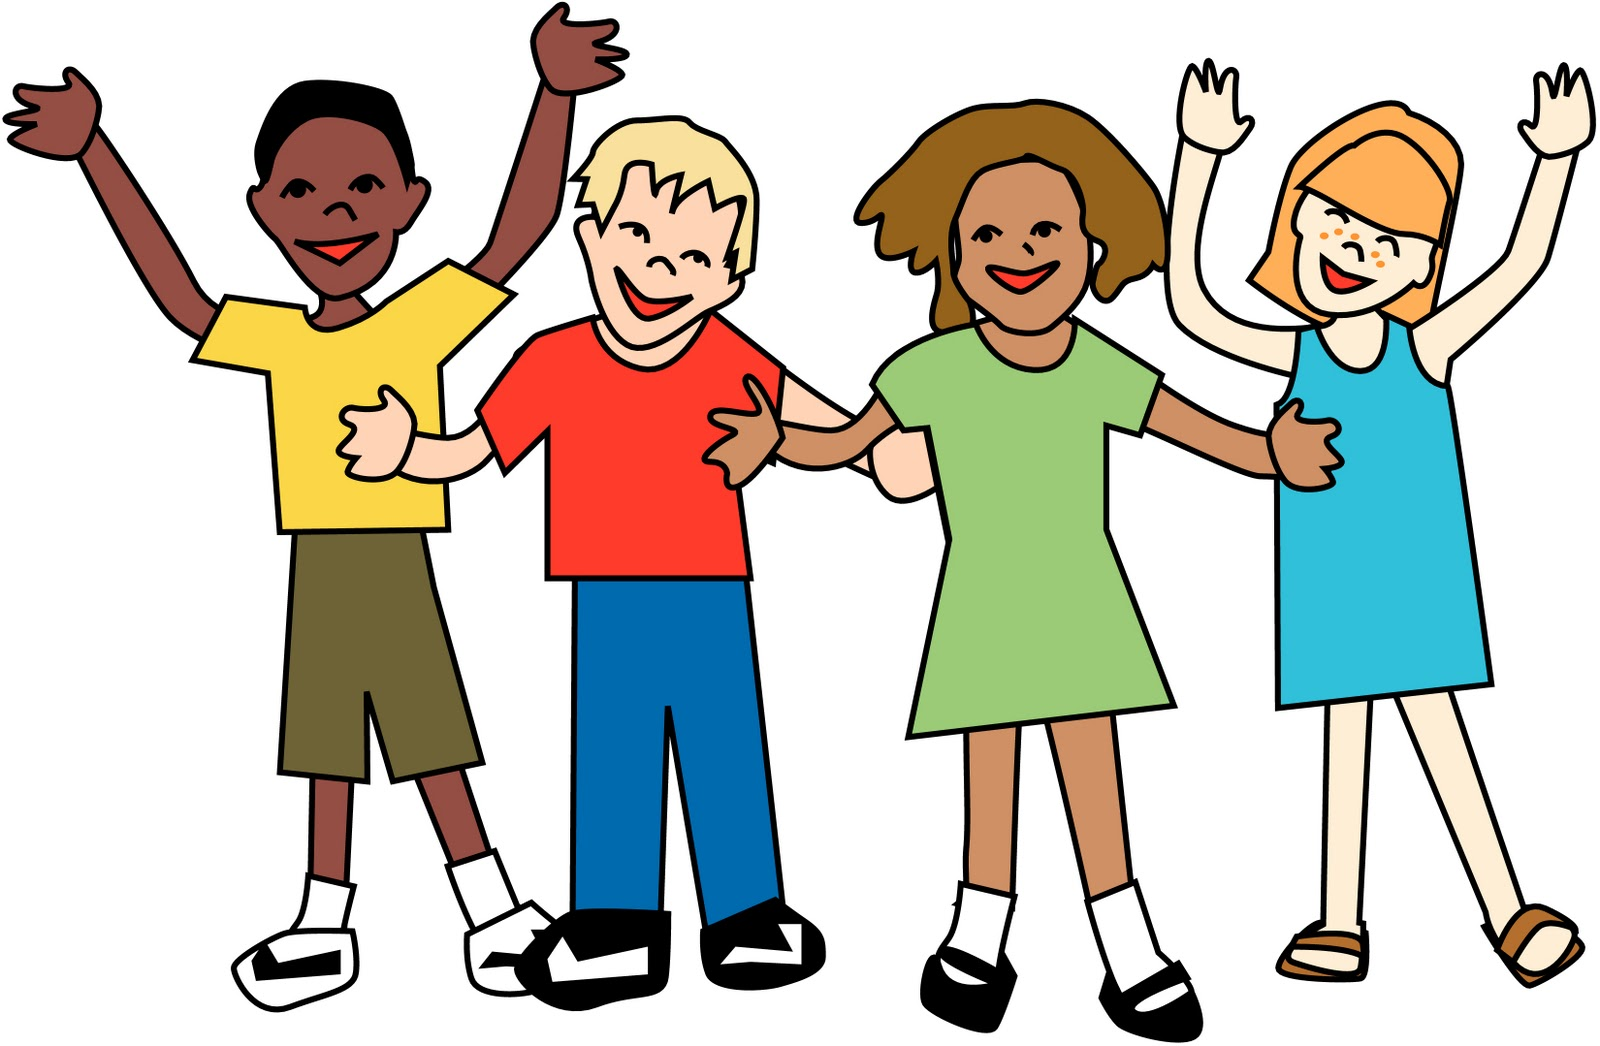 Group of kids clipart picture library library KIDS\' TEAM | New Hope Community Church - Clip Art Library picture library library